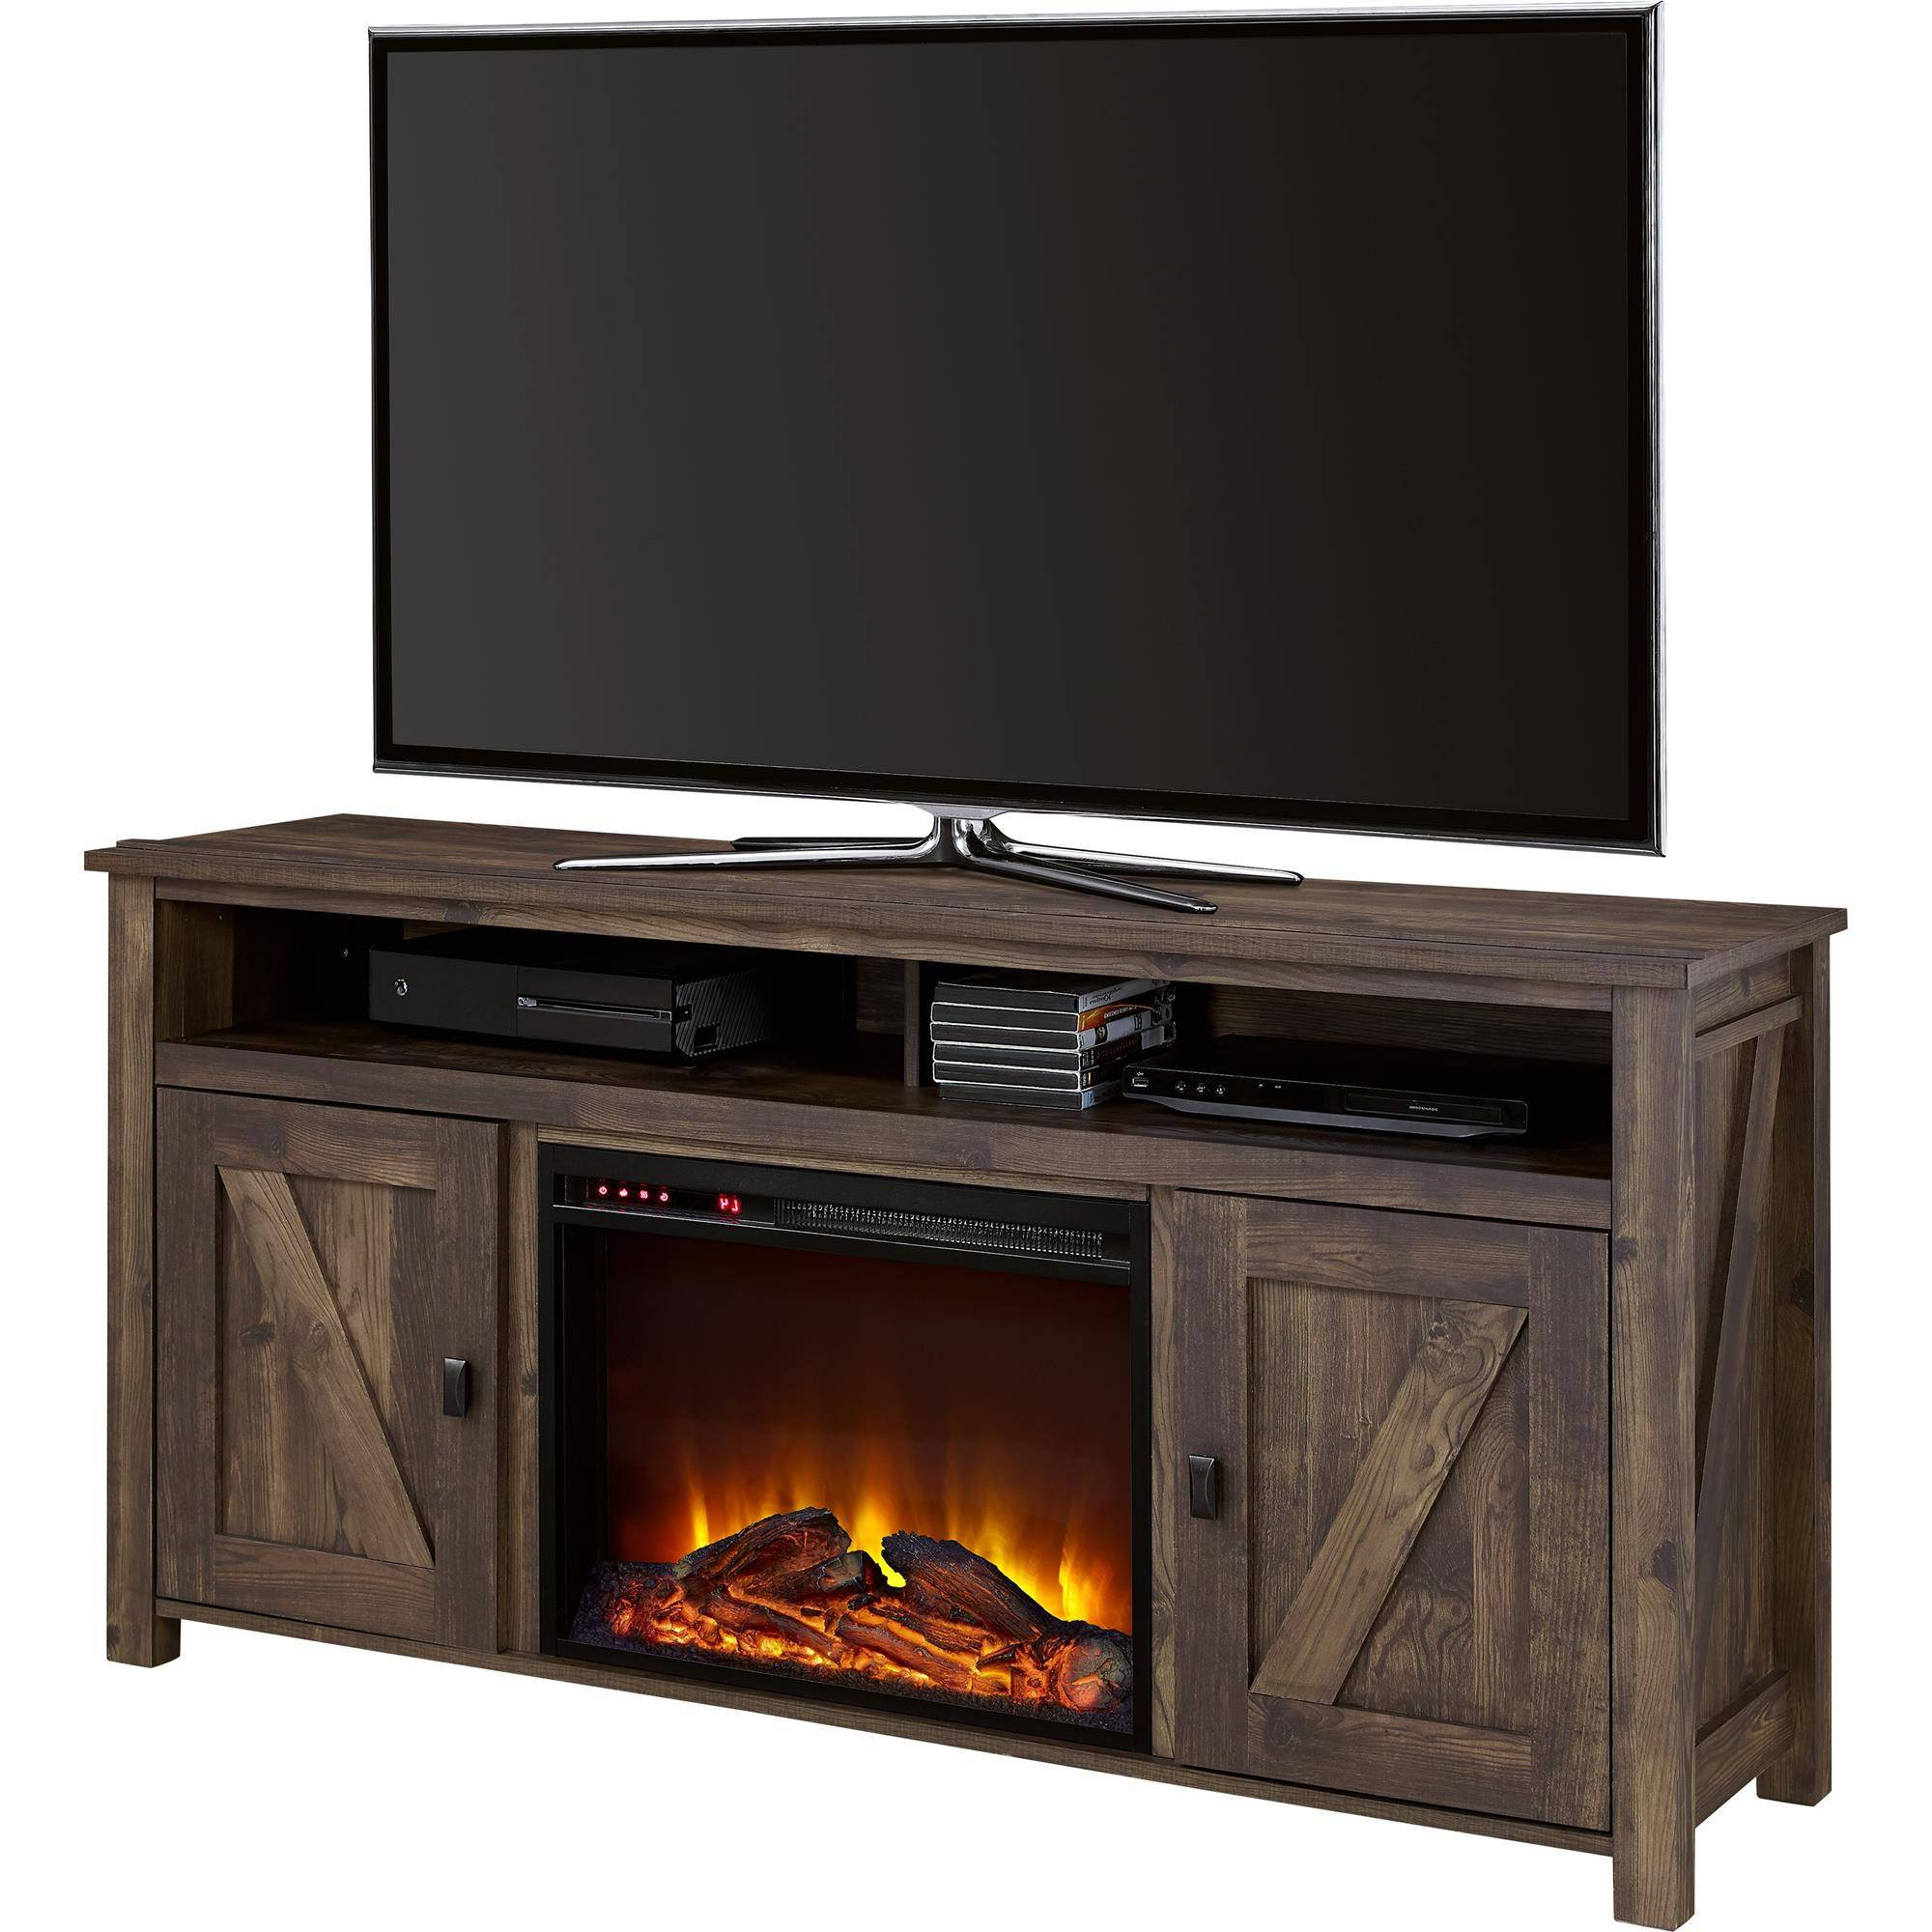 Bjs Tv Stands Within Most Recently Released Bjs Tv Stands – Carolinacarconnections (View 7 of 20)